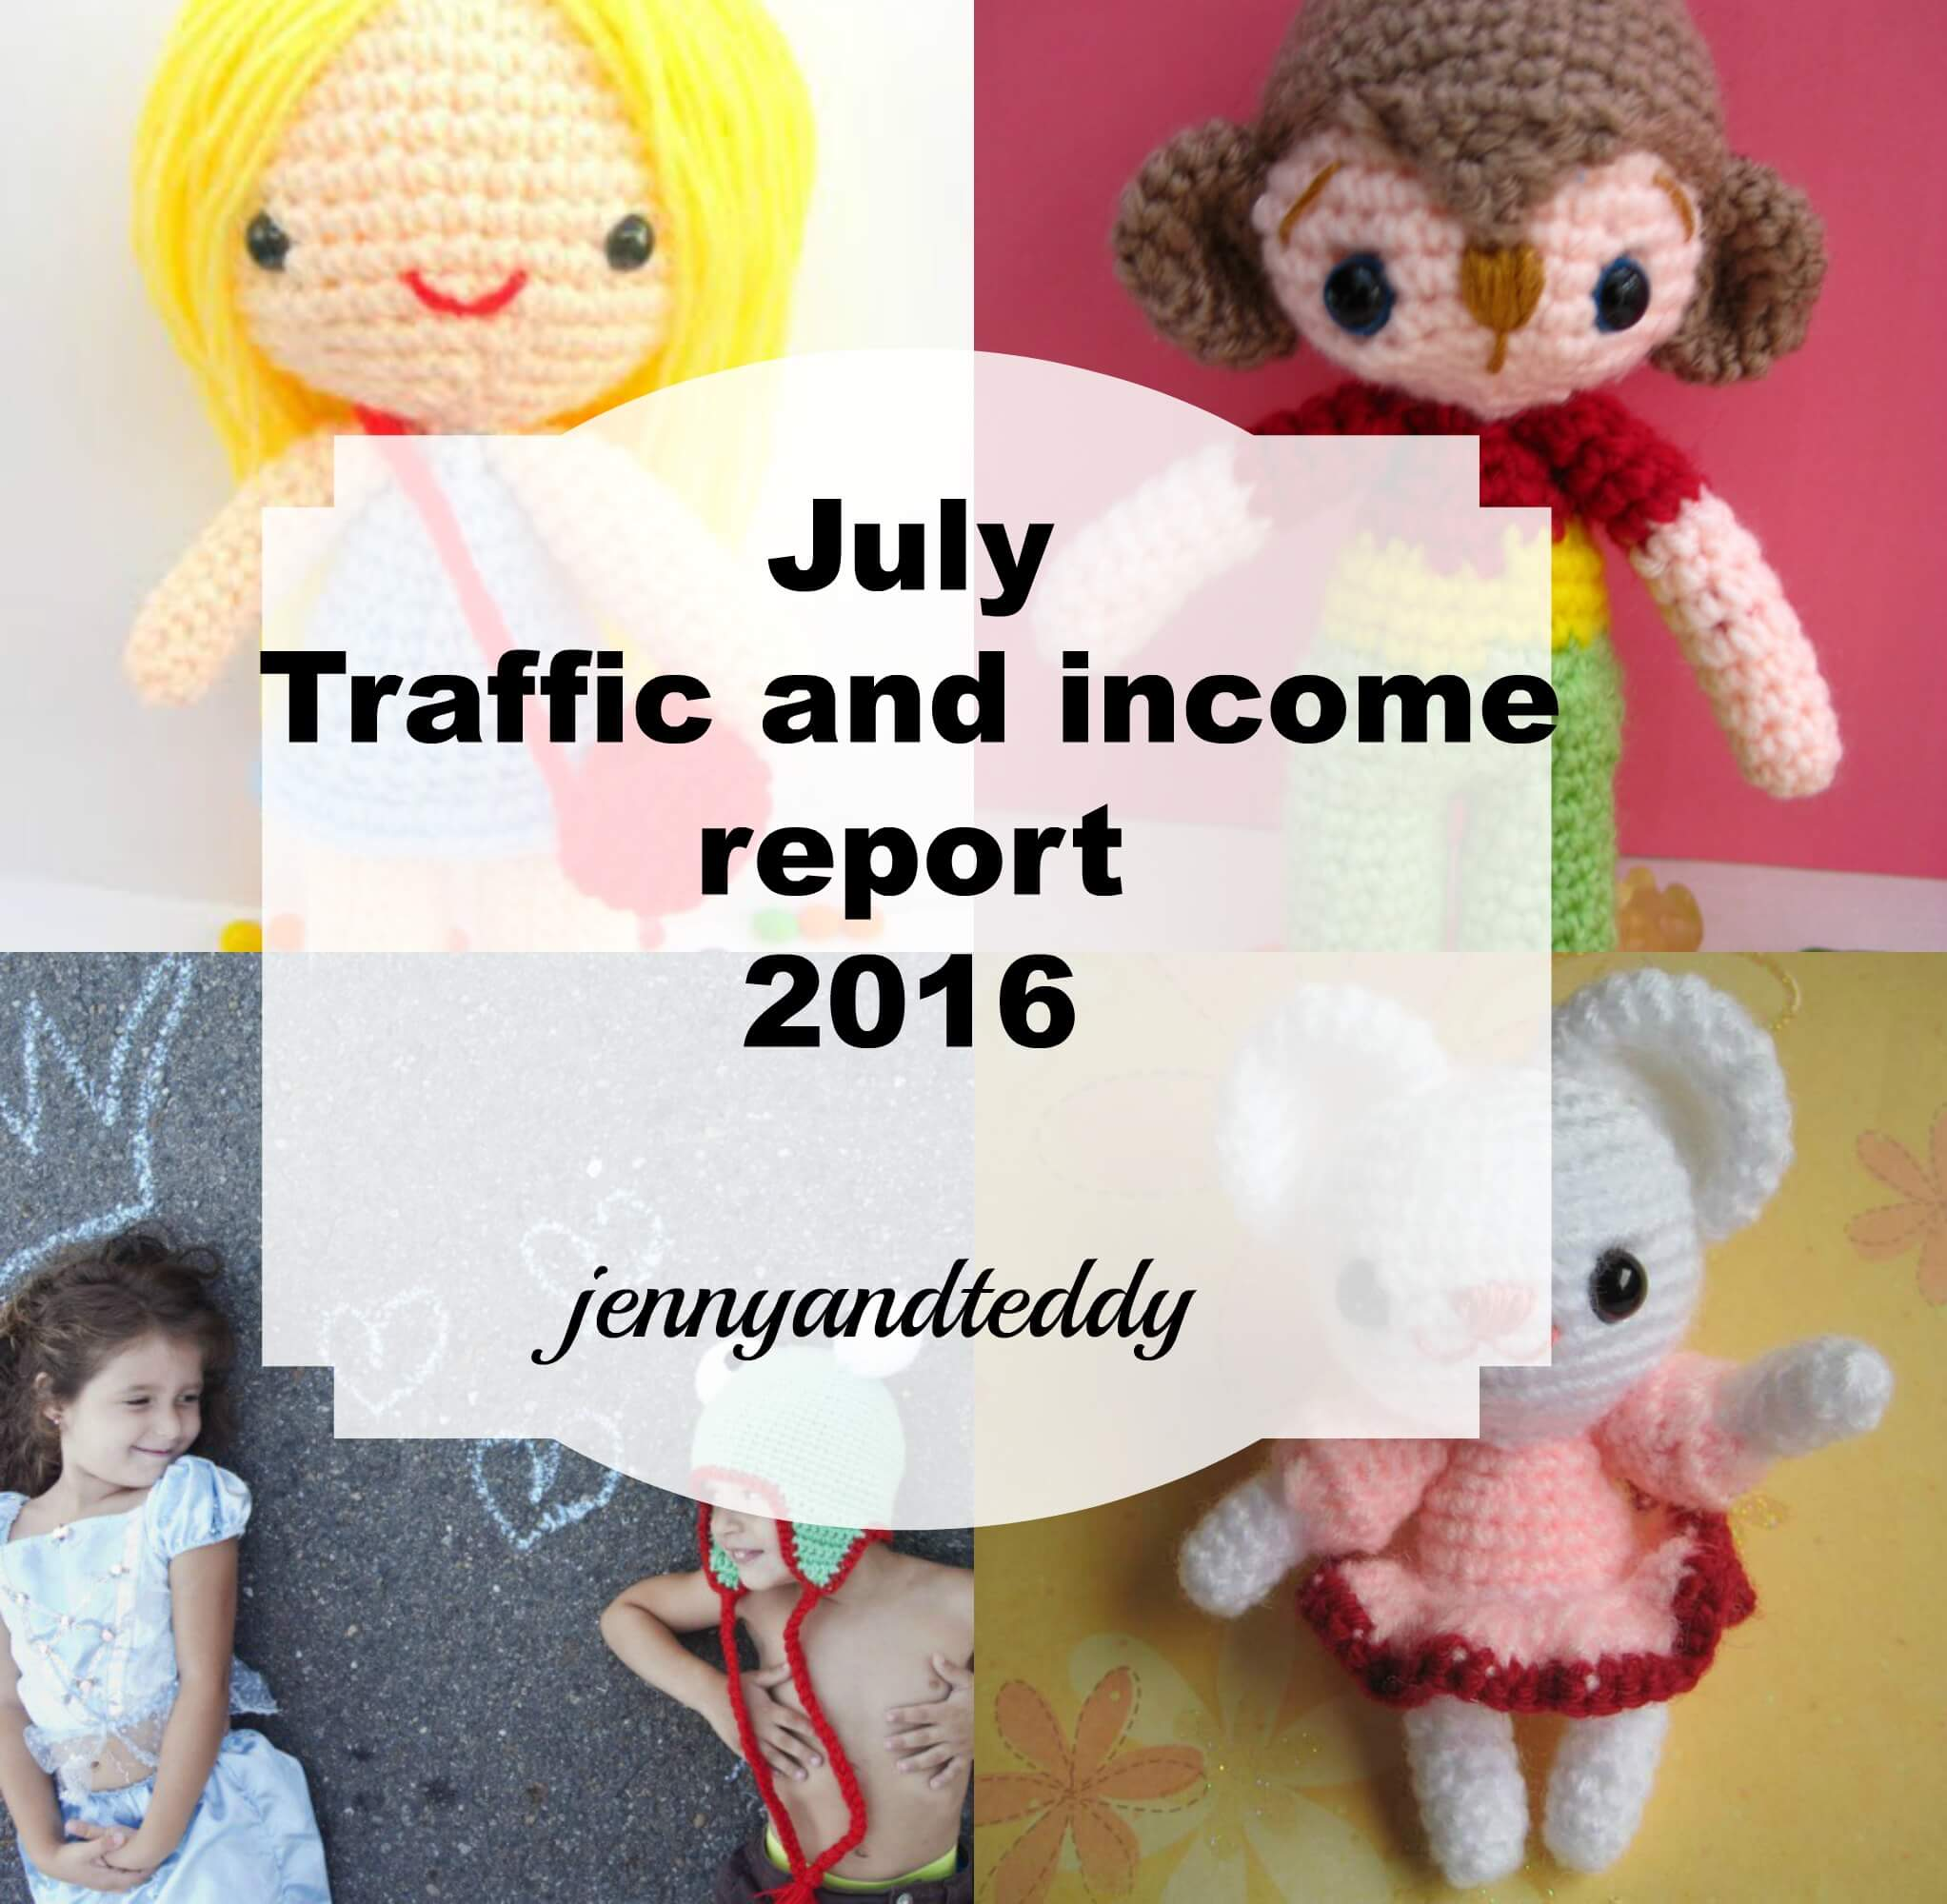 july traffic and income report by jennyandteddy 2016